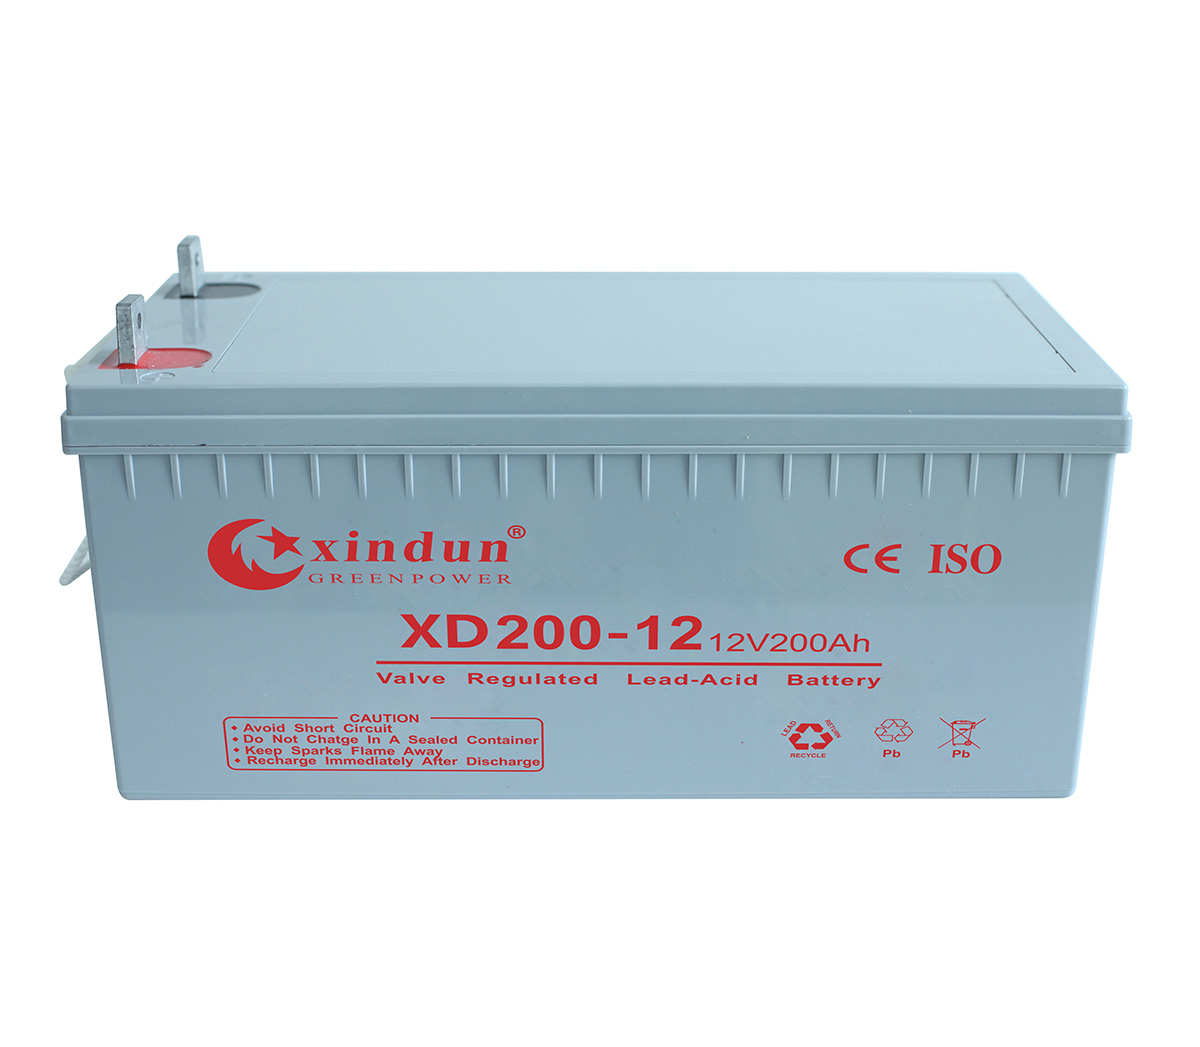 XD200-12 Battery (12V200Ah)